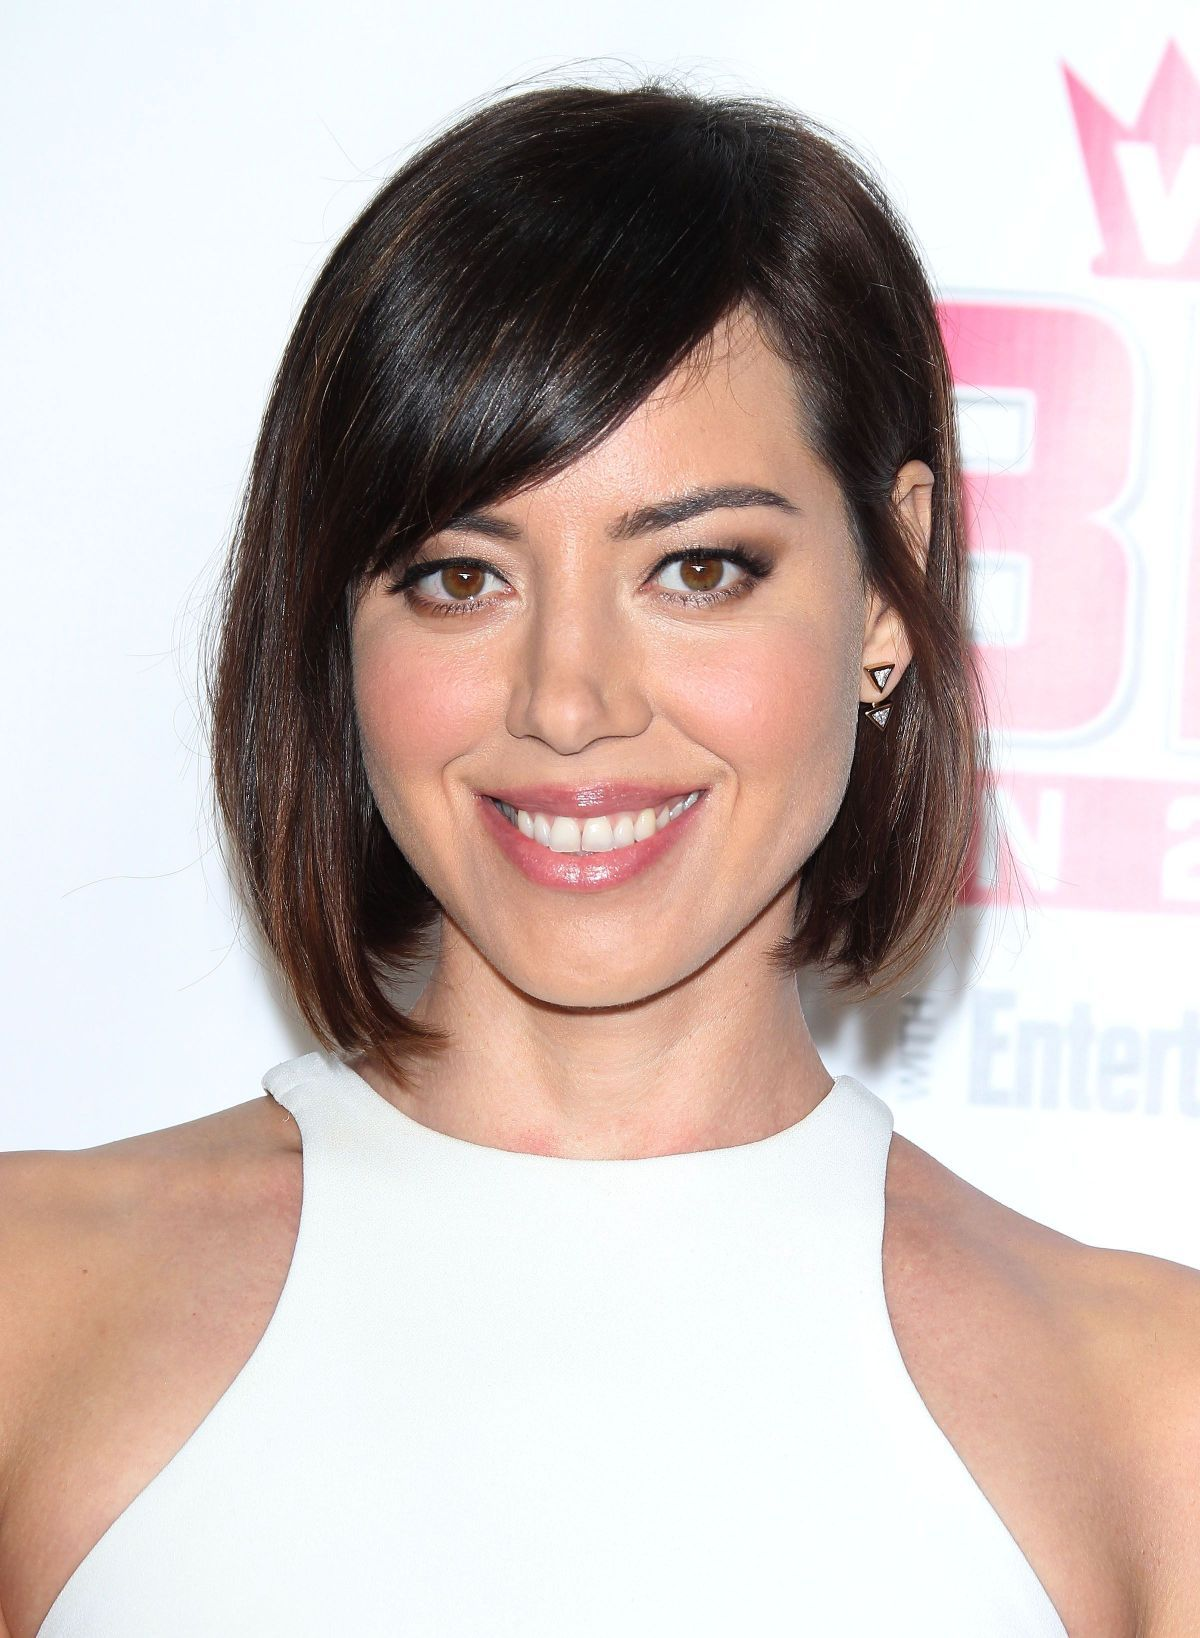 Aubrey Plaza R Gentlemanboners Gorgeous Hair Hairstyles With Bangs Short Hair Styles